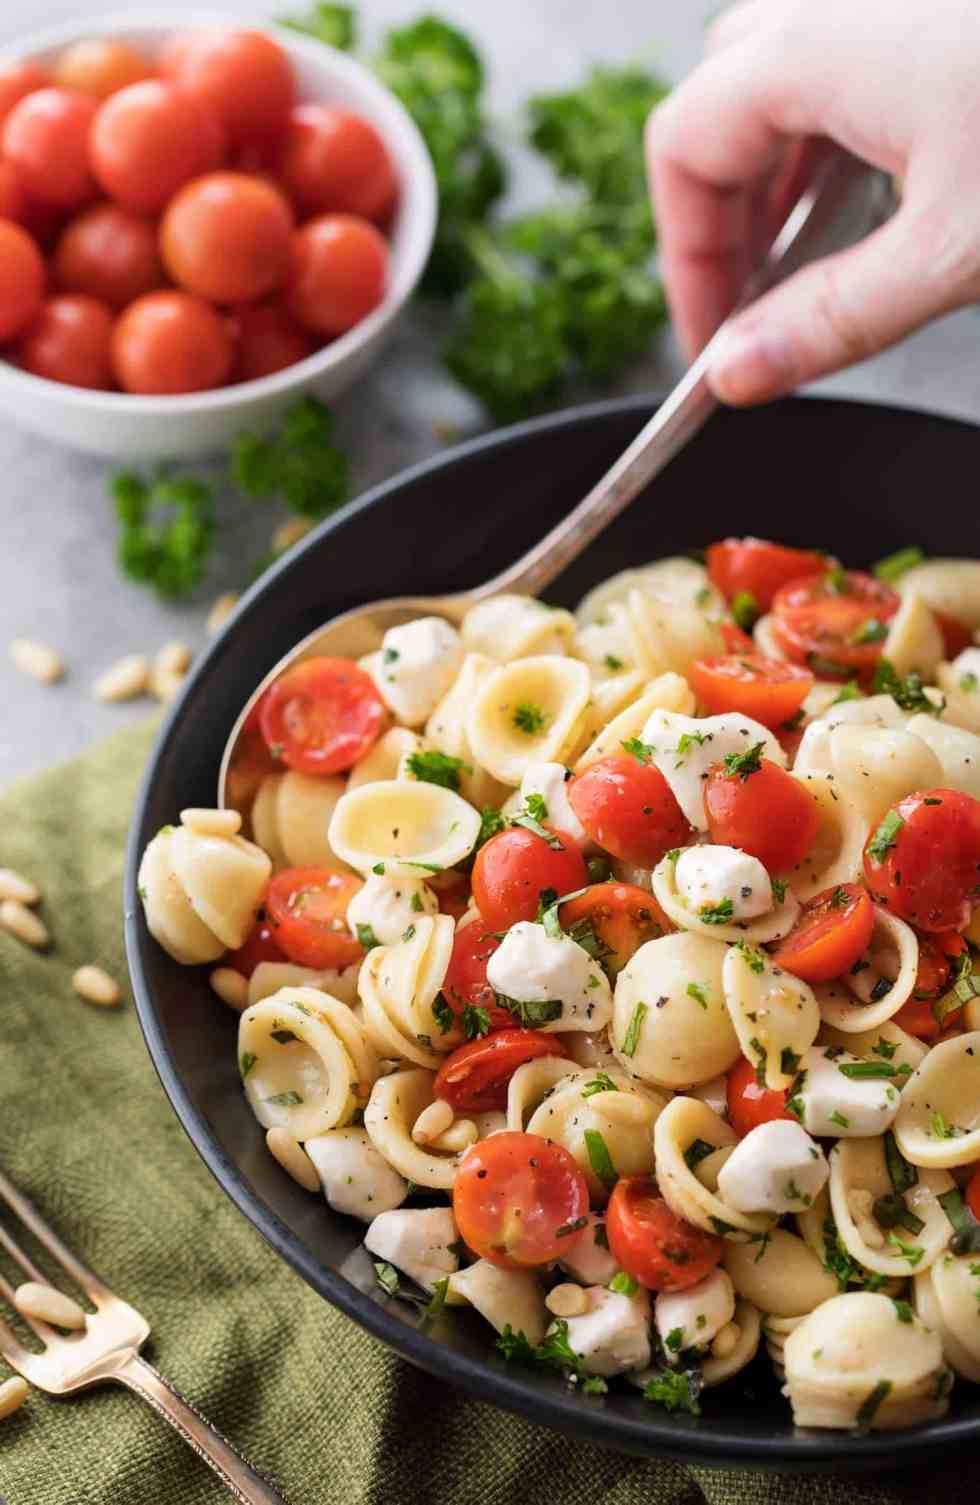 The perfect Caprese pasta salad for a potluck or summer bbq! Caprese pasta salad made with juicy tomatoes, marinated fresh mozzarella cheese, fragrant fresh basil, and a mouthwatering homemade Italian herb vinaigrette! A versatile popular side dish!   cafedelites.com